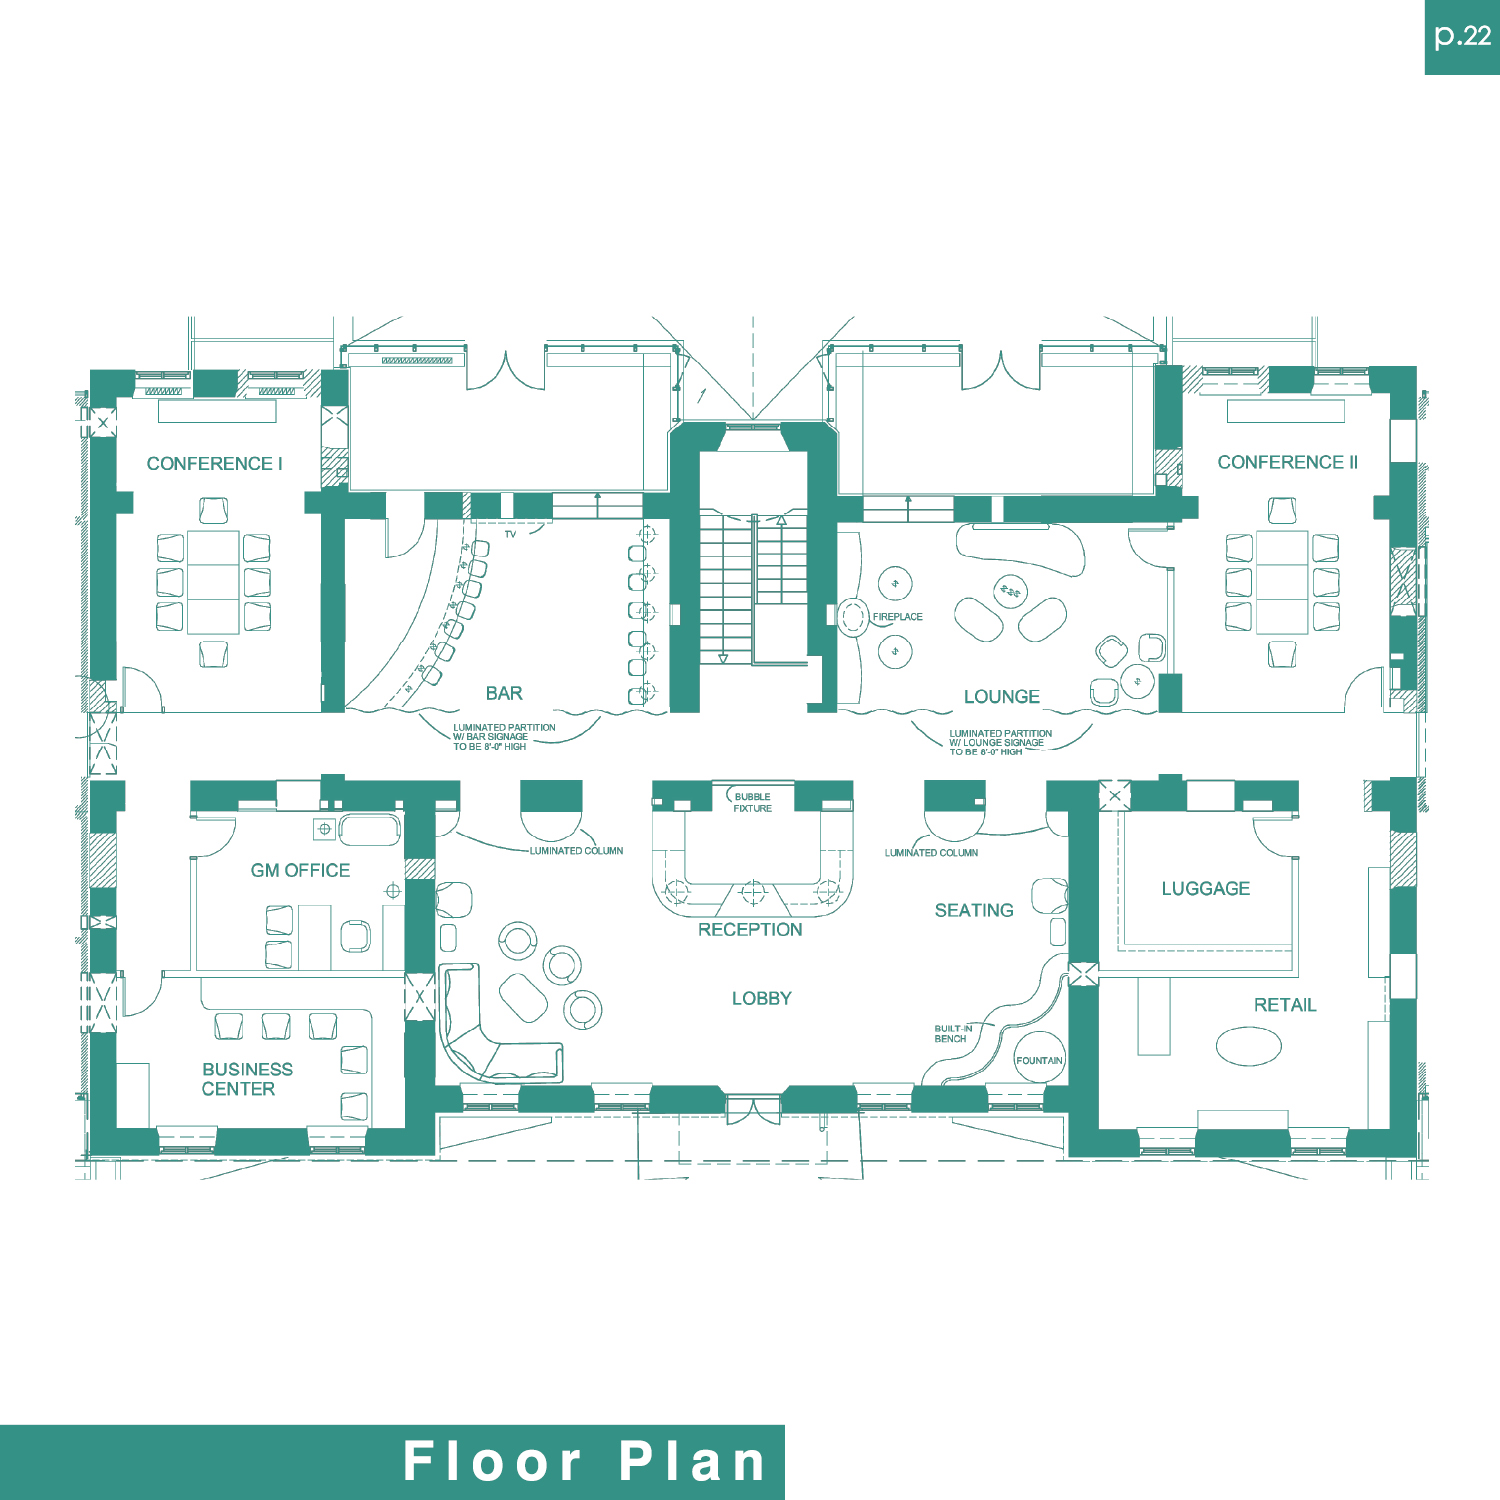 Hotel lobby floor plans images for Floor plan blueprint